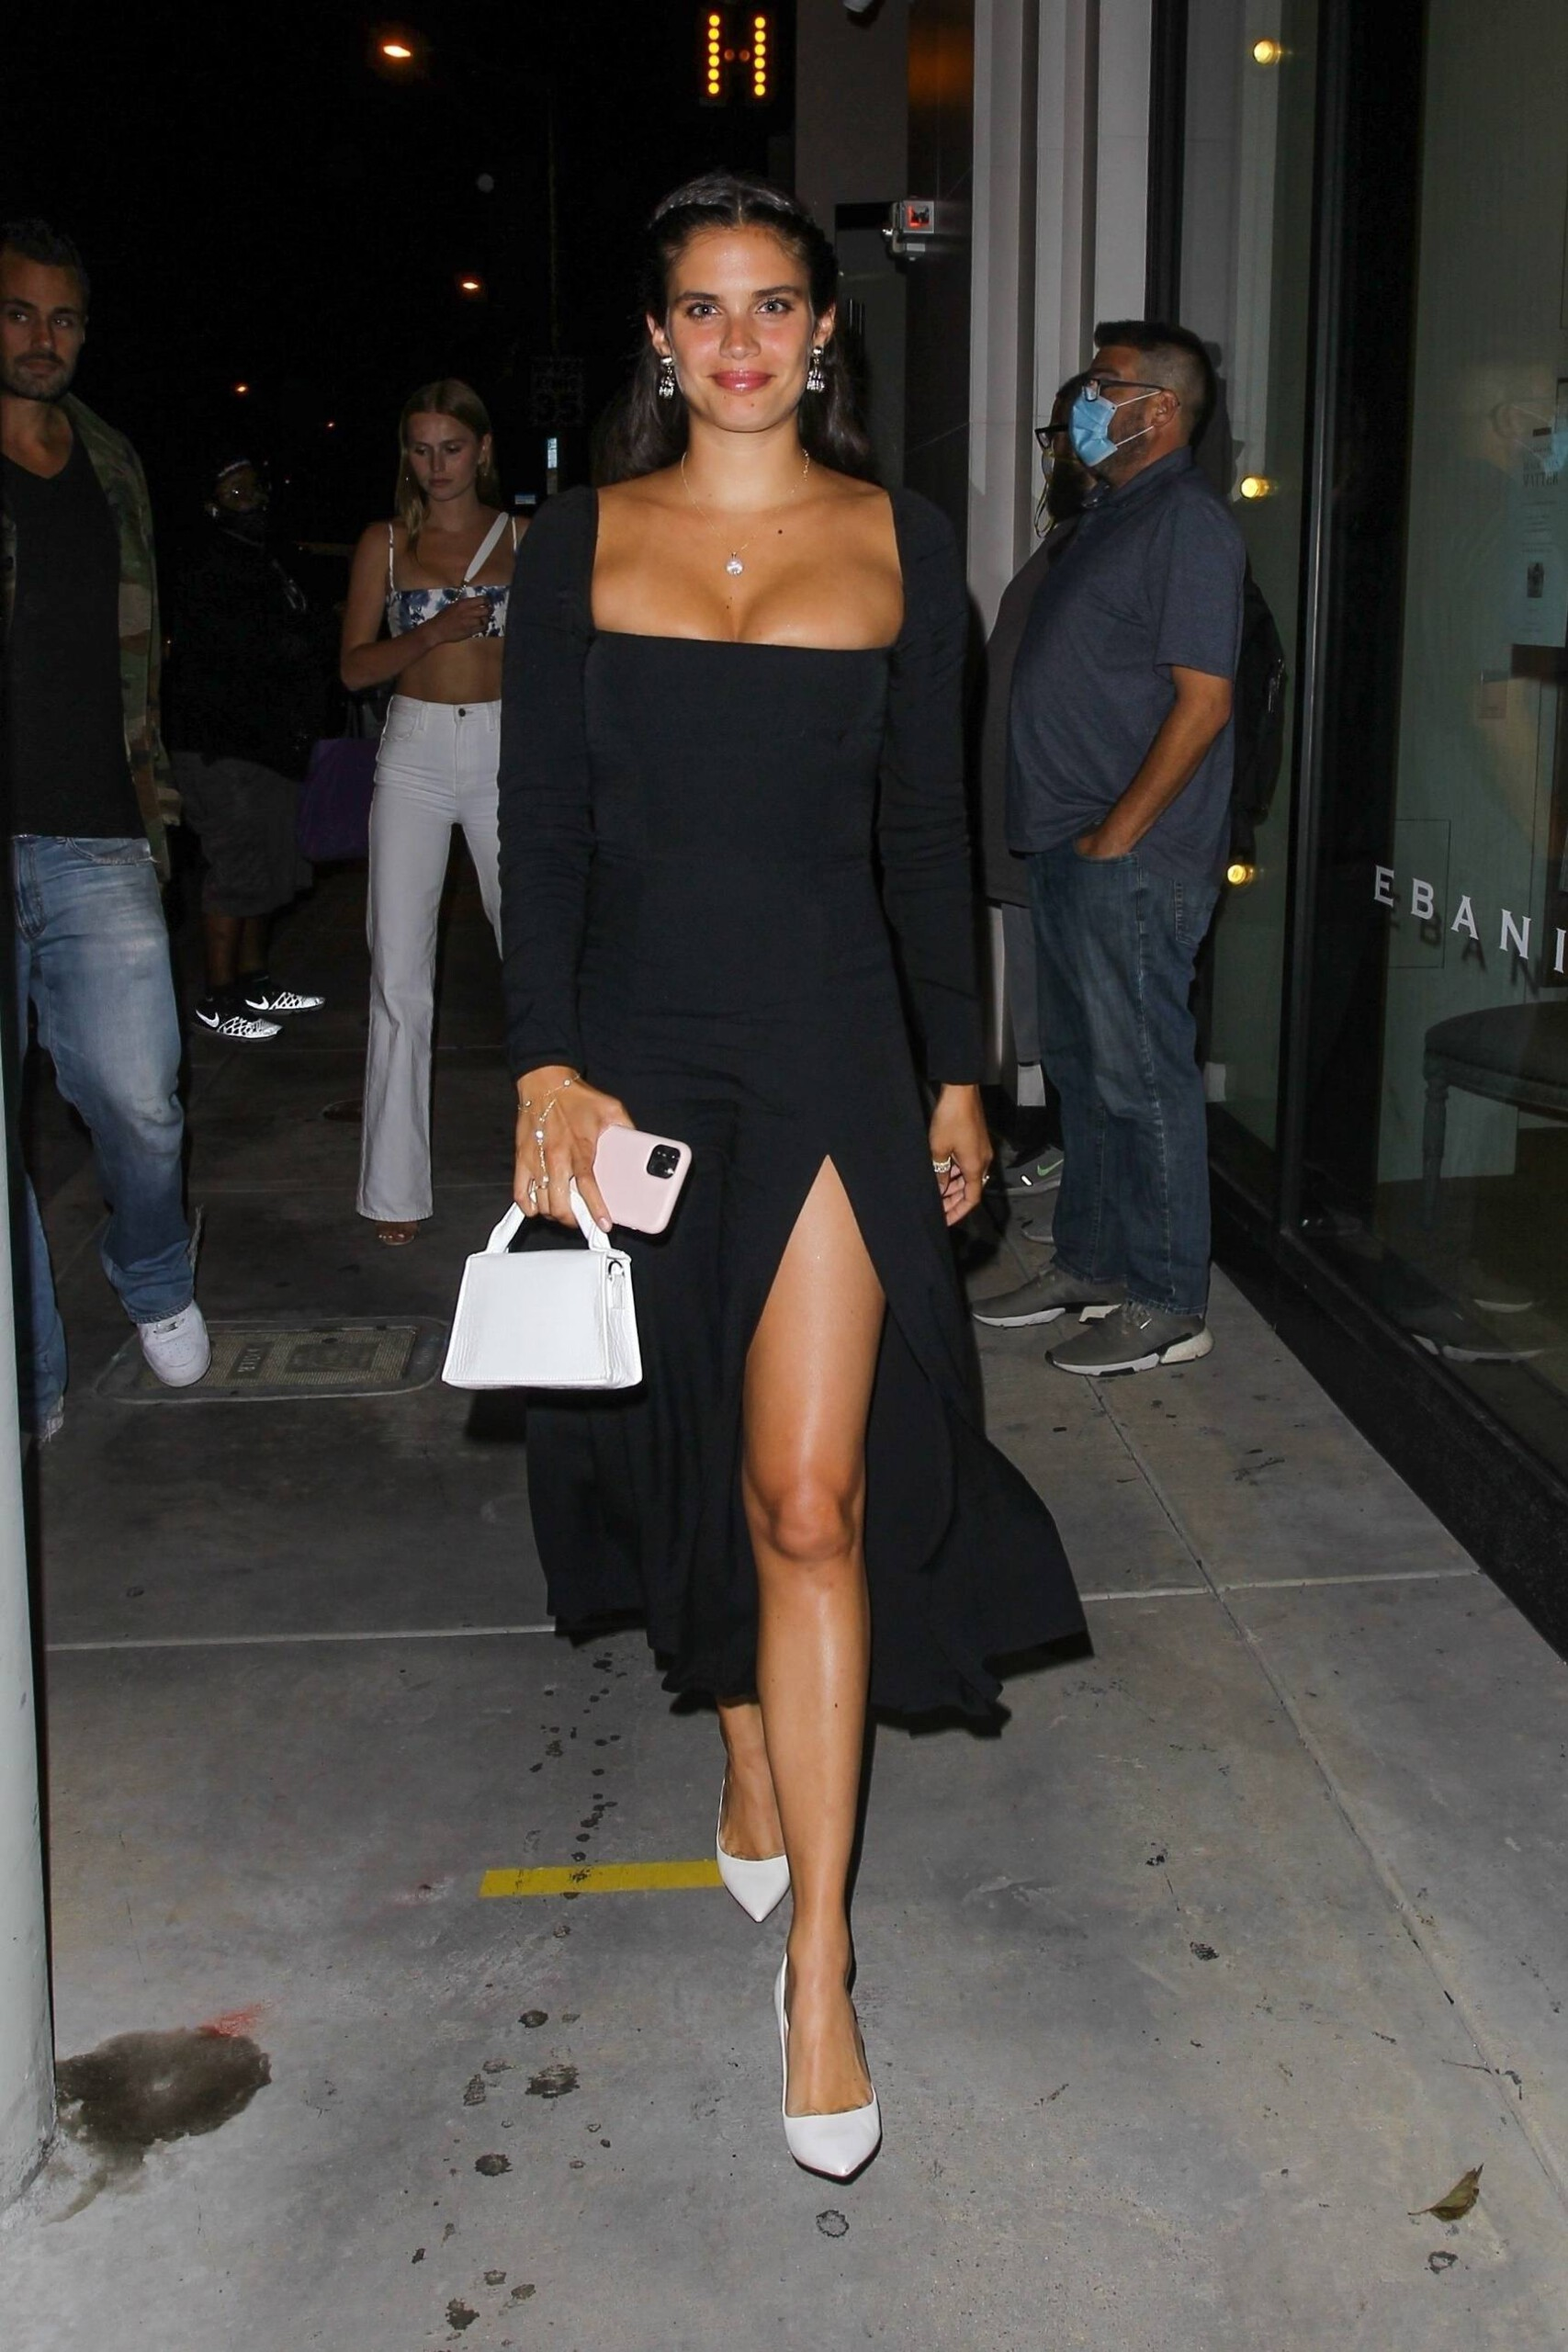 Sara Sampaio – Beautiful In Sexy Black Dress At Catch Restaurant In West Hollywood 0008